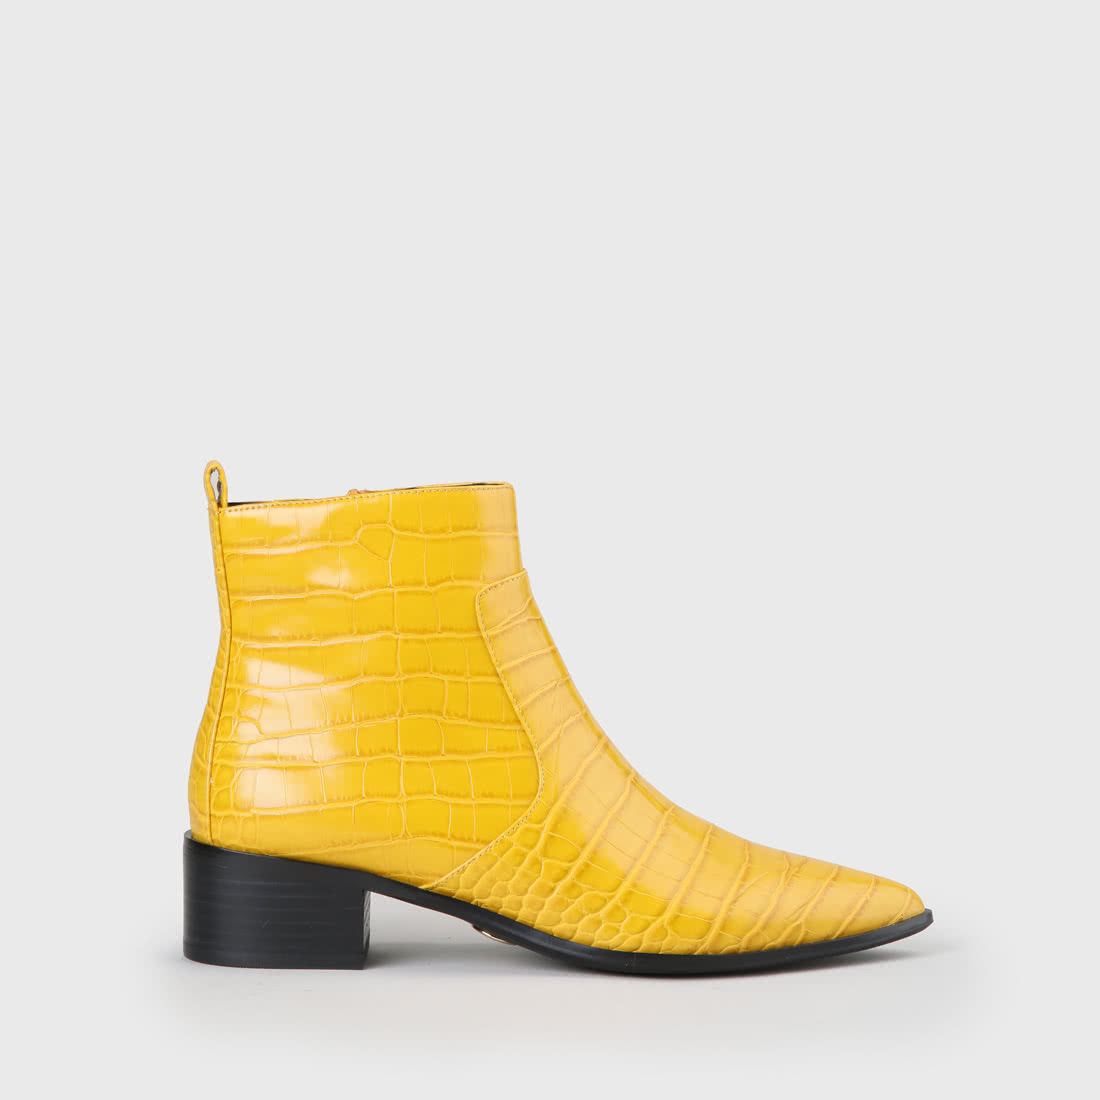 meilleur grossiste 2019 meilleurs nouvelle collection Bottine zippée Fiona aspect crocodile jaune moutarde